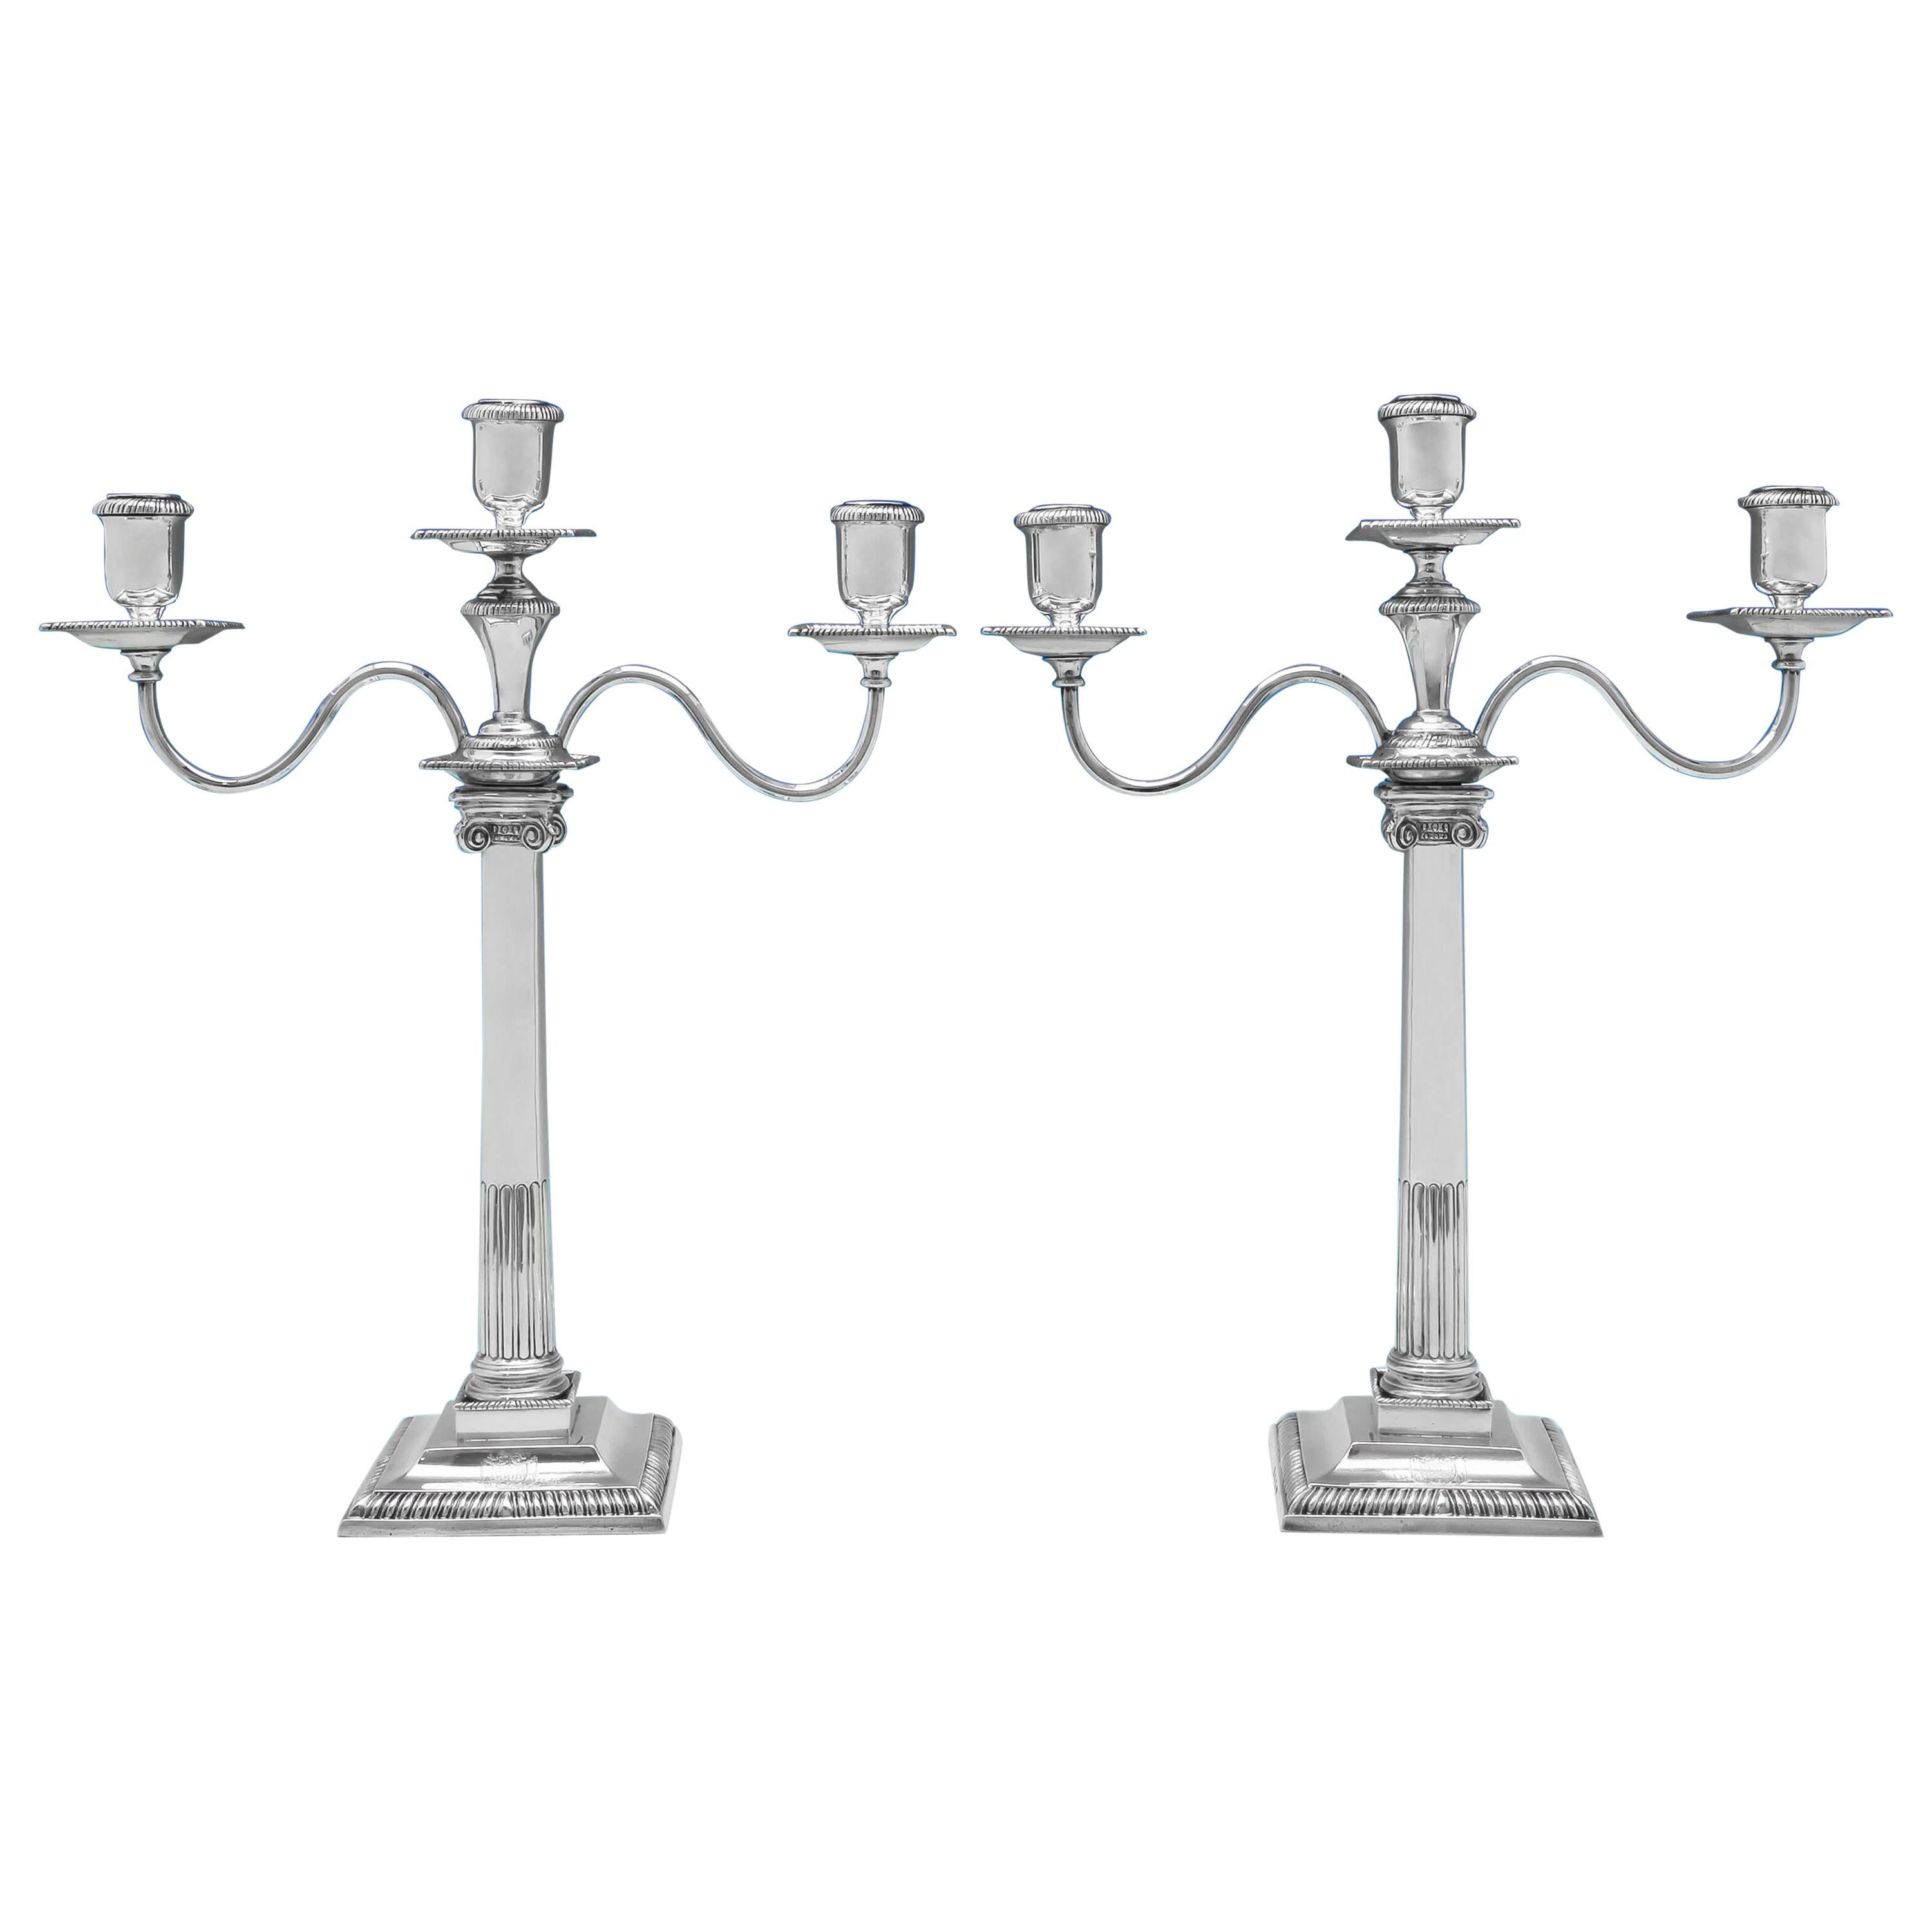 18th Century George III Sterling Silver Pair of Candelabra from 1763